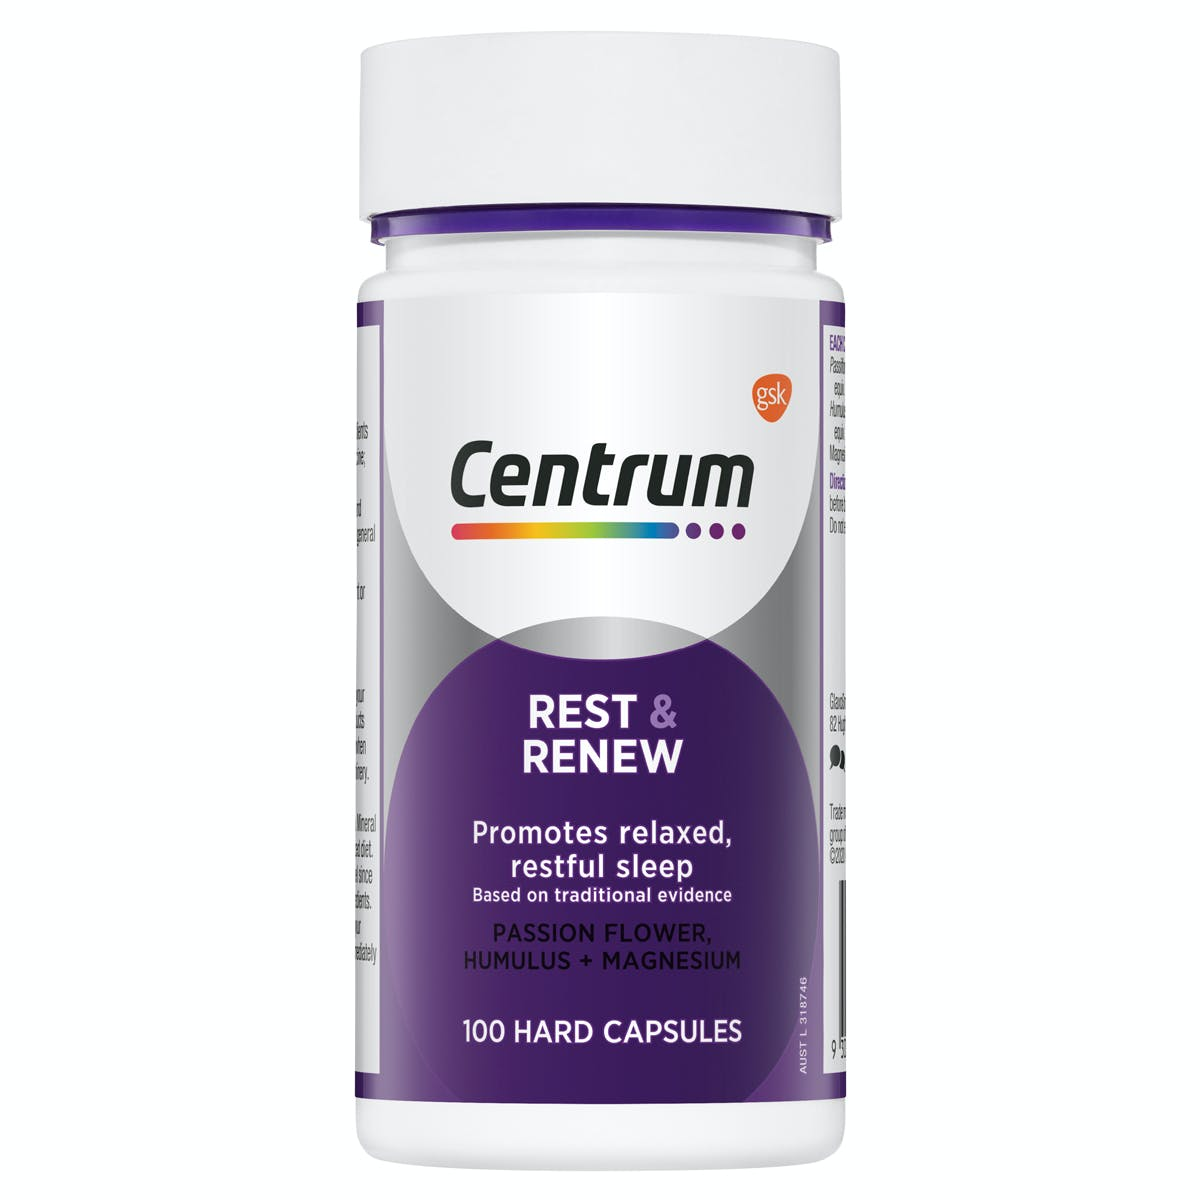 Bottle of Rest & Renew from the Centrum Benefits Blend (50 capsules).